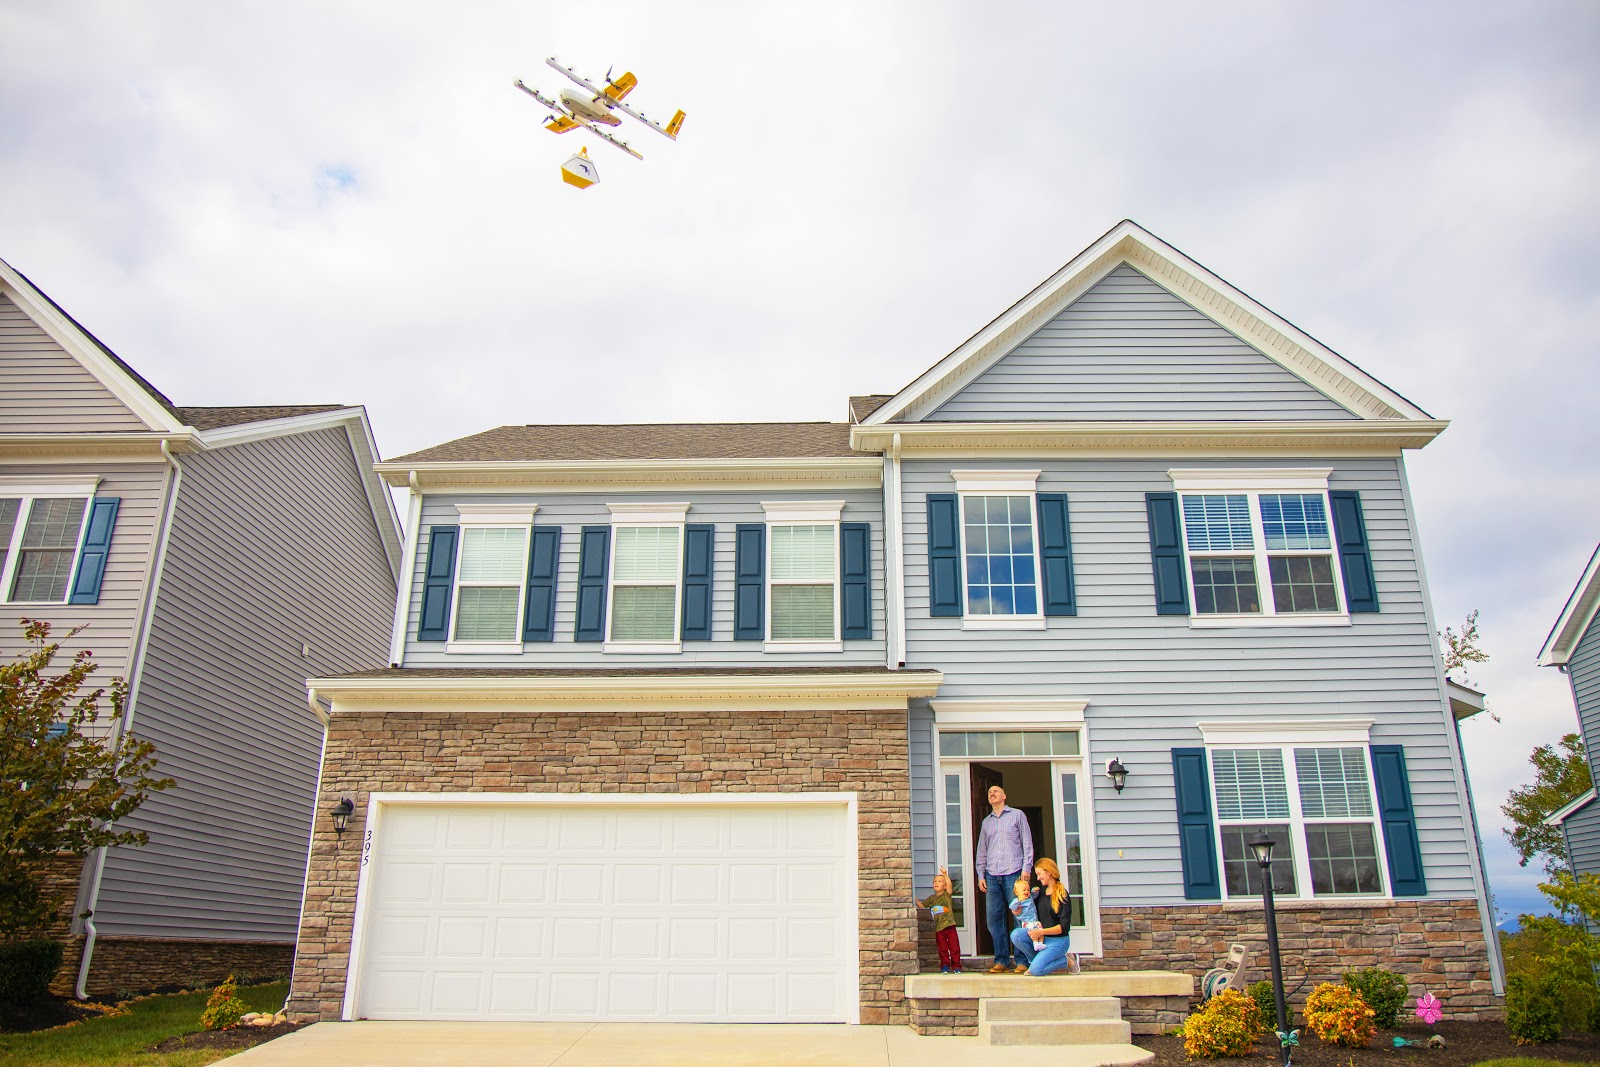 A family in Christiansburg, Virginia receiving a drone delivery from Wing